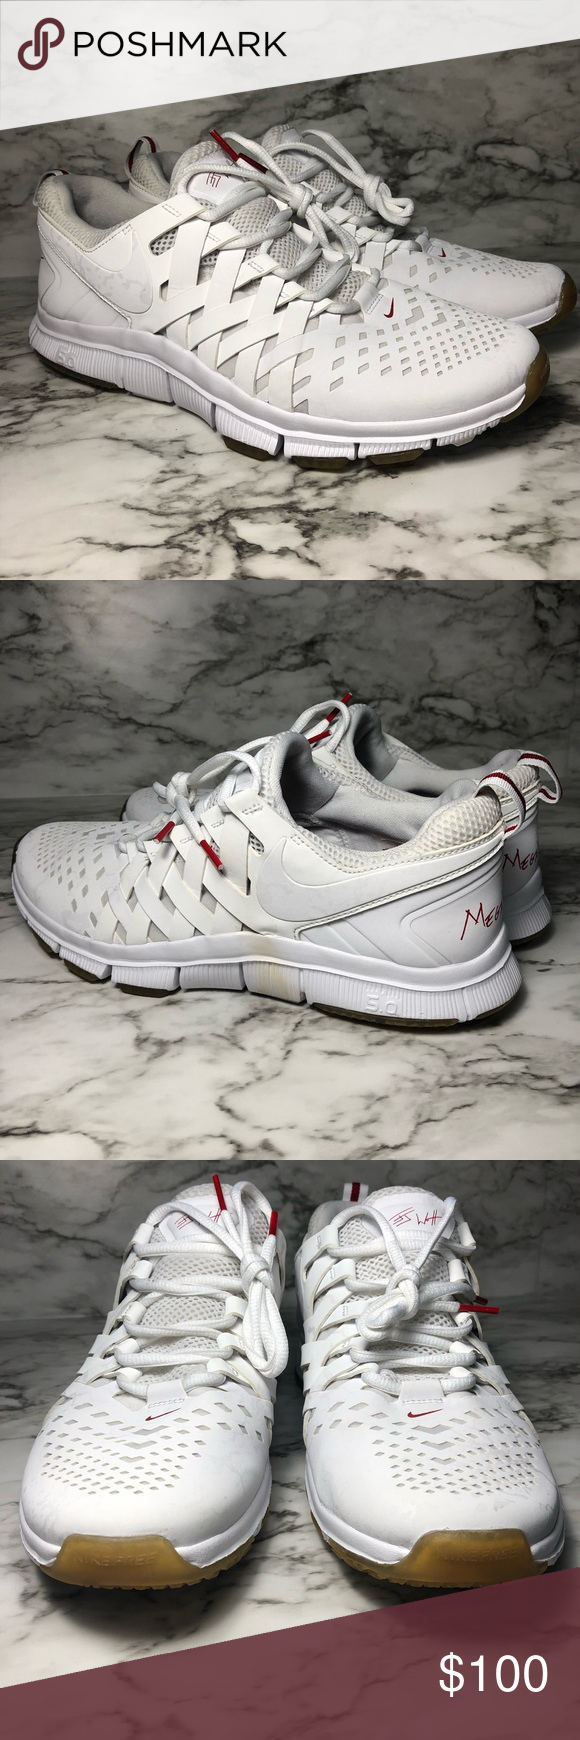 753609b4eb16 Nike Free Trainer 5.0 JJ Watt  Mega Watt  Brand  Nike Size  Men s 9.0  Condition  Good Condition! Yellow stain on one side of one of the shoe (As  shown in ...